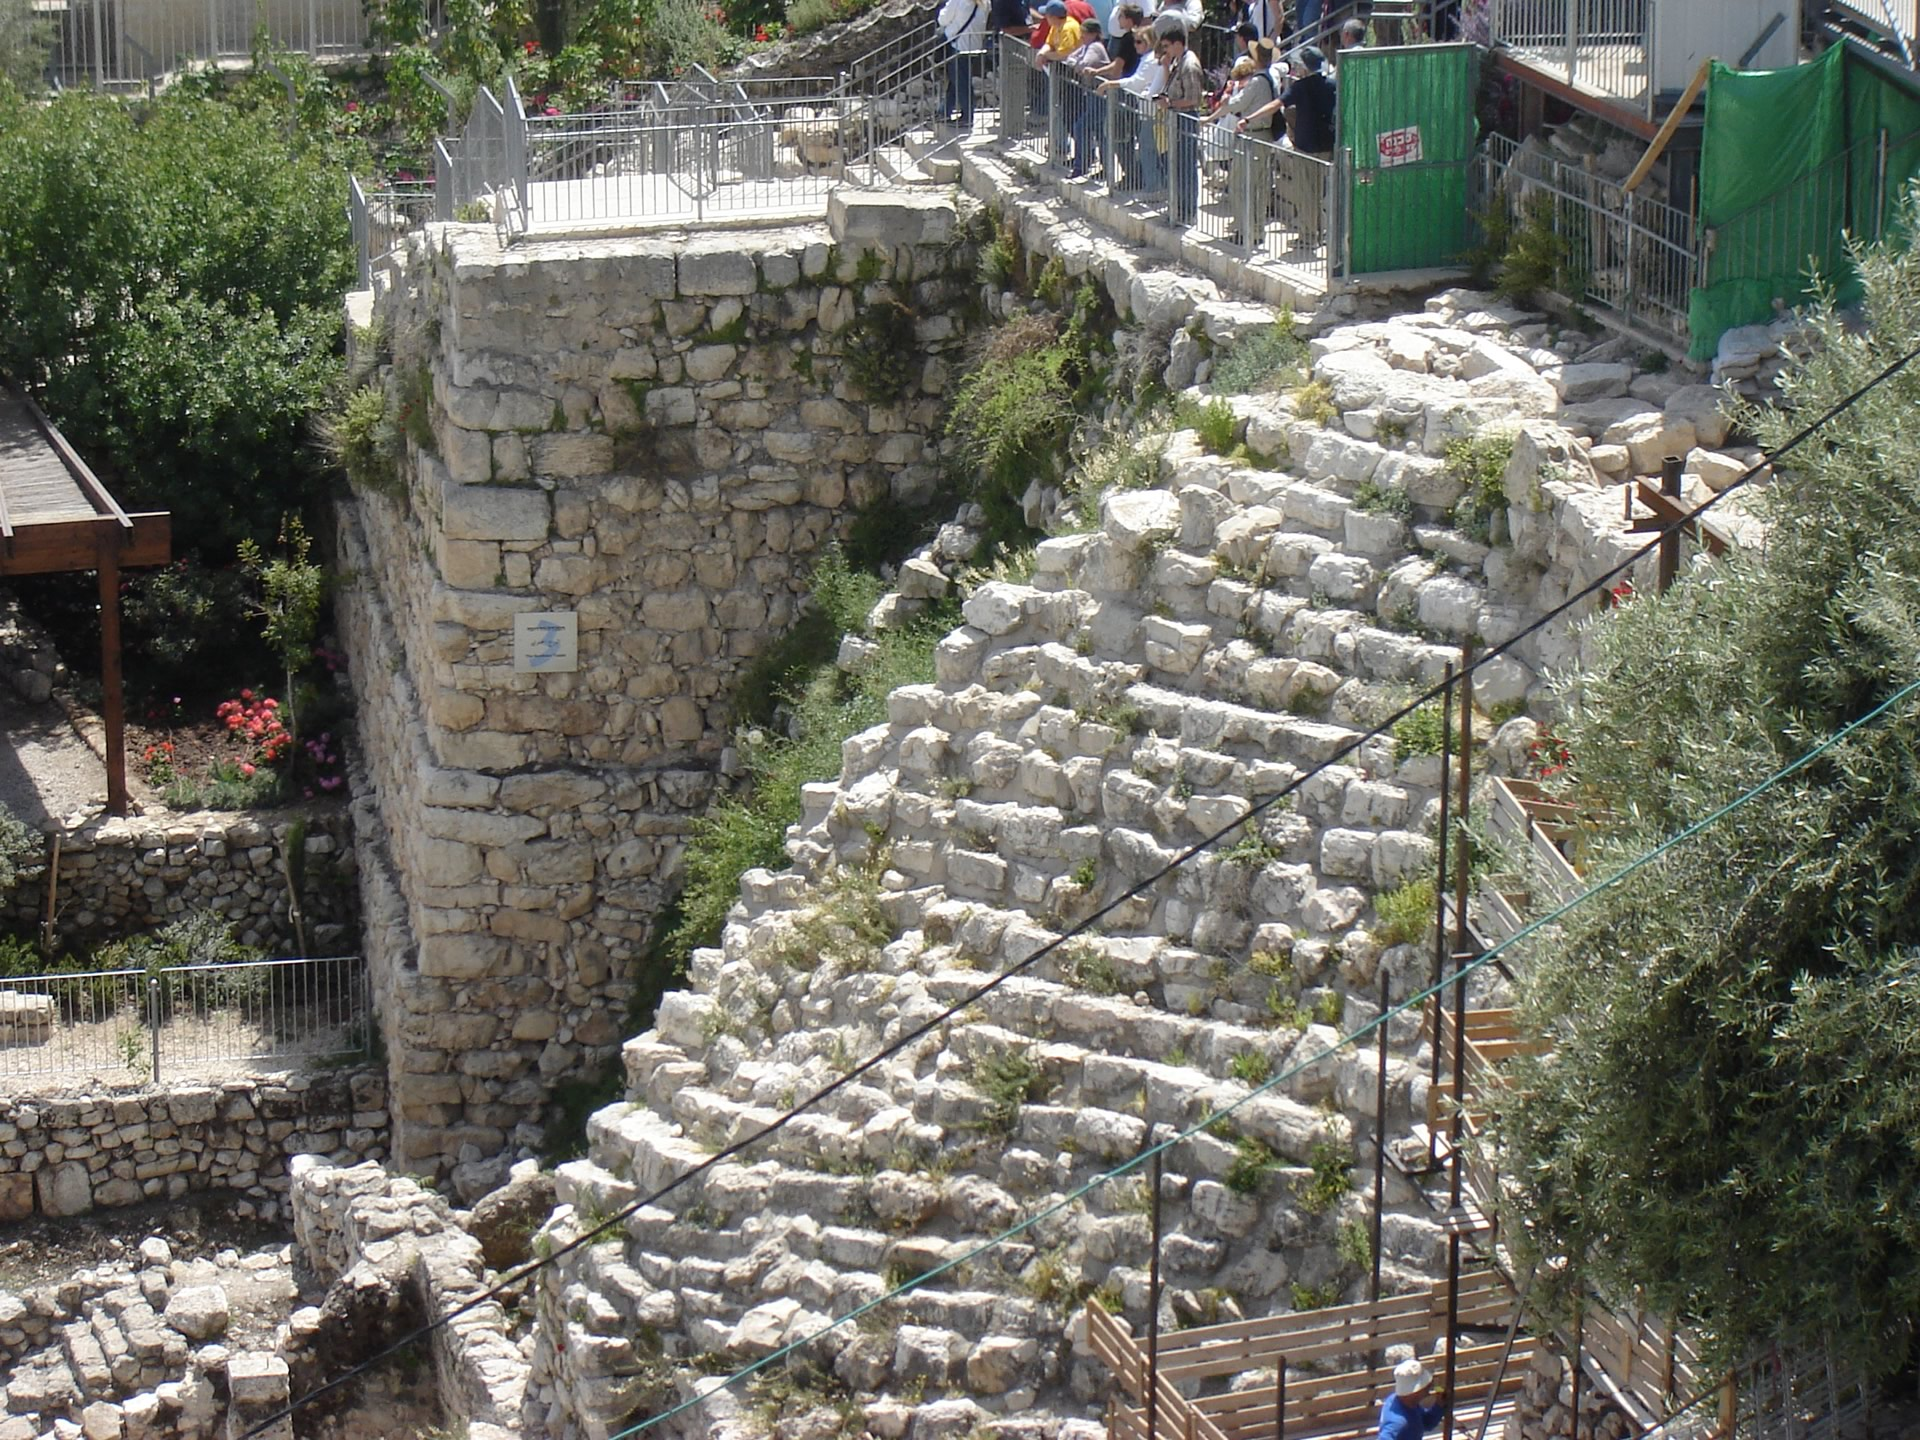 Part 9 - City of David